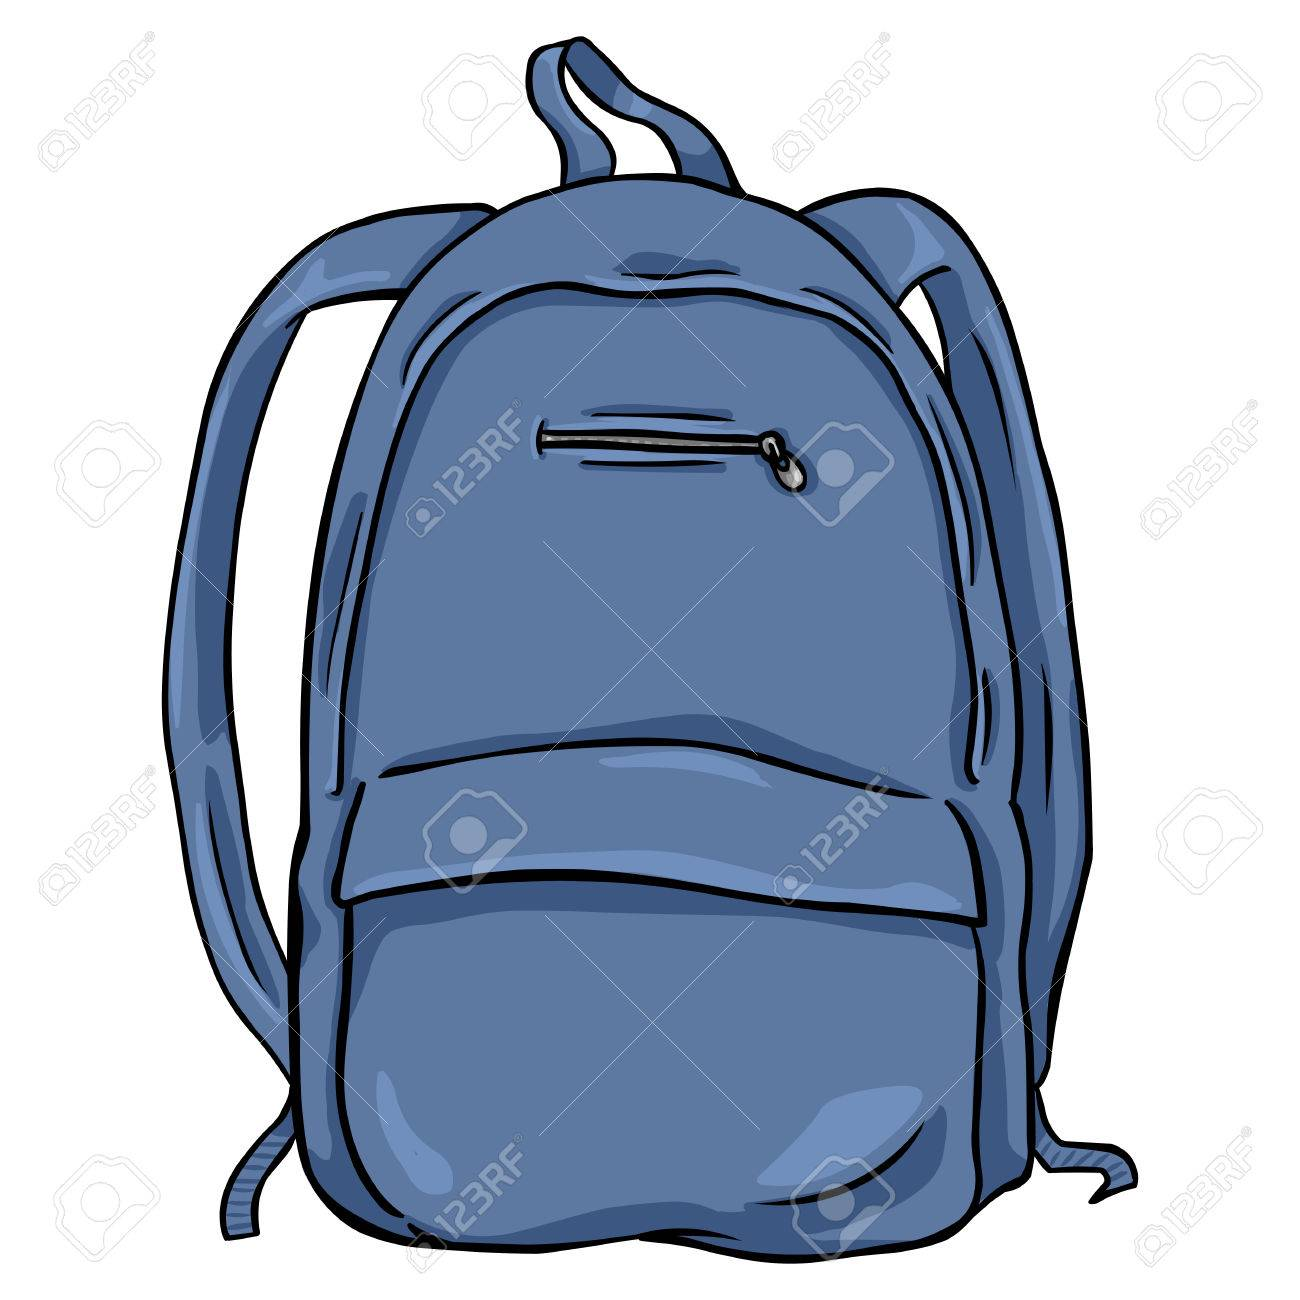 Vector Single Cartoon Backpack On White Background Royalty Free Cliparts Vectors And Stock Illustration Image 63194167